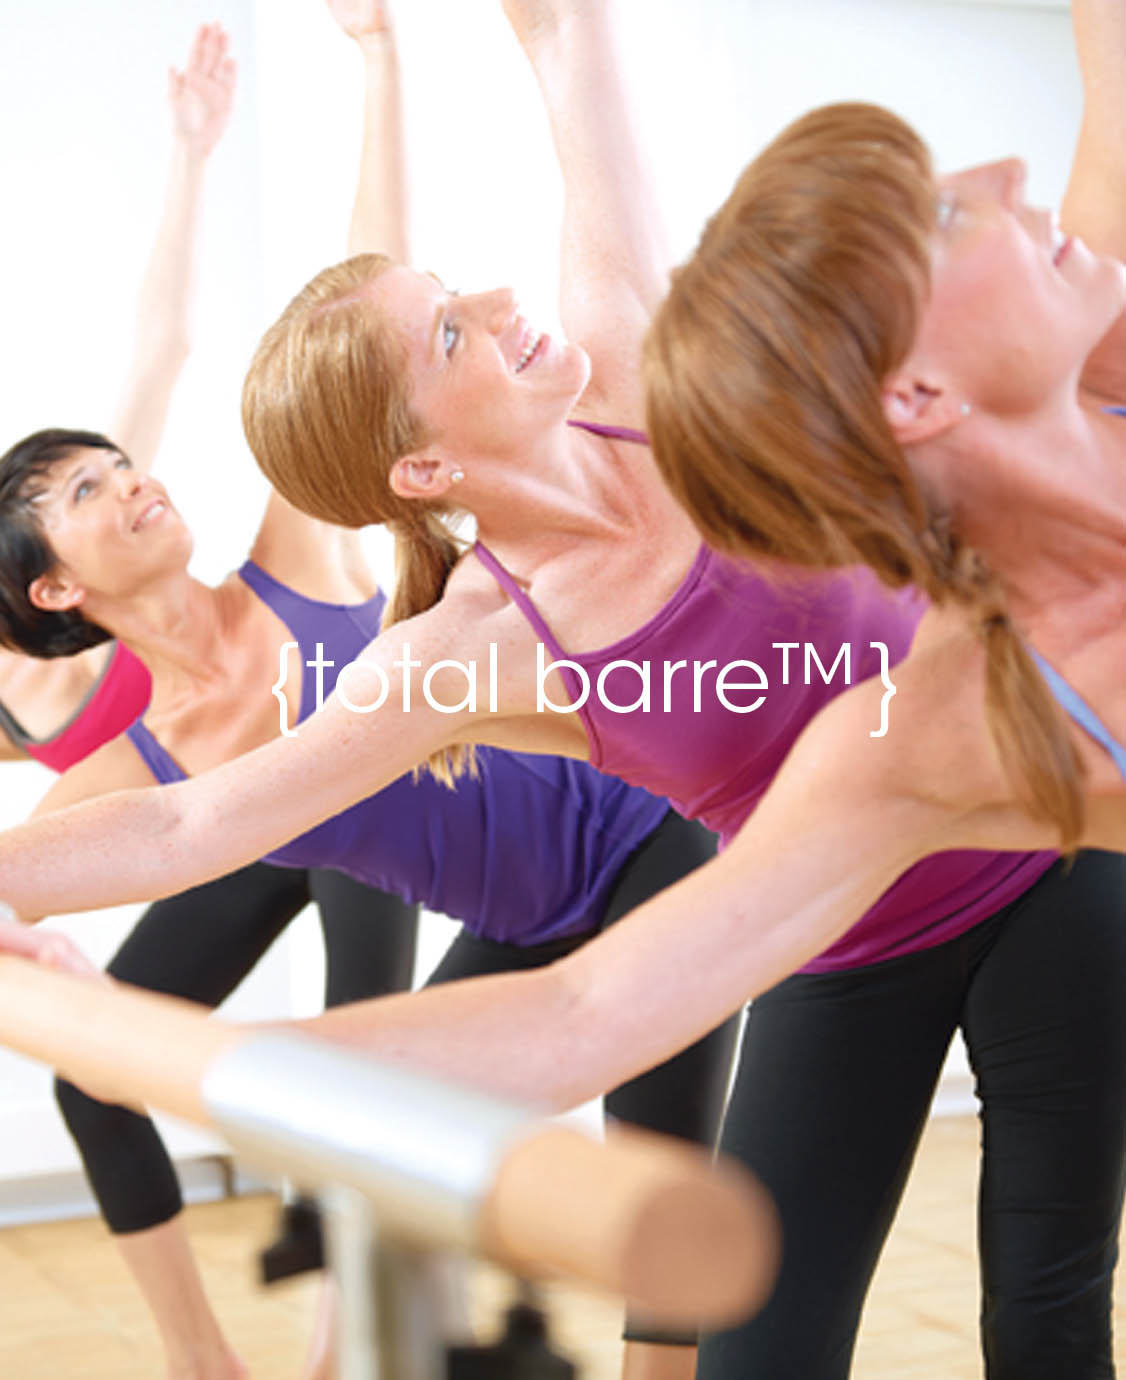 total barre™ Lotus health and fitness